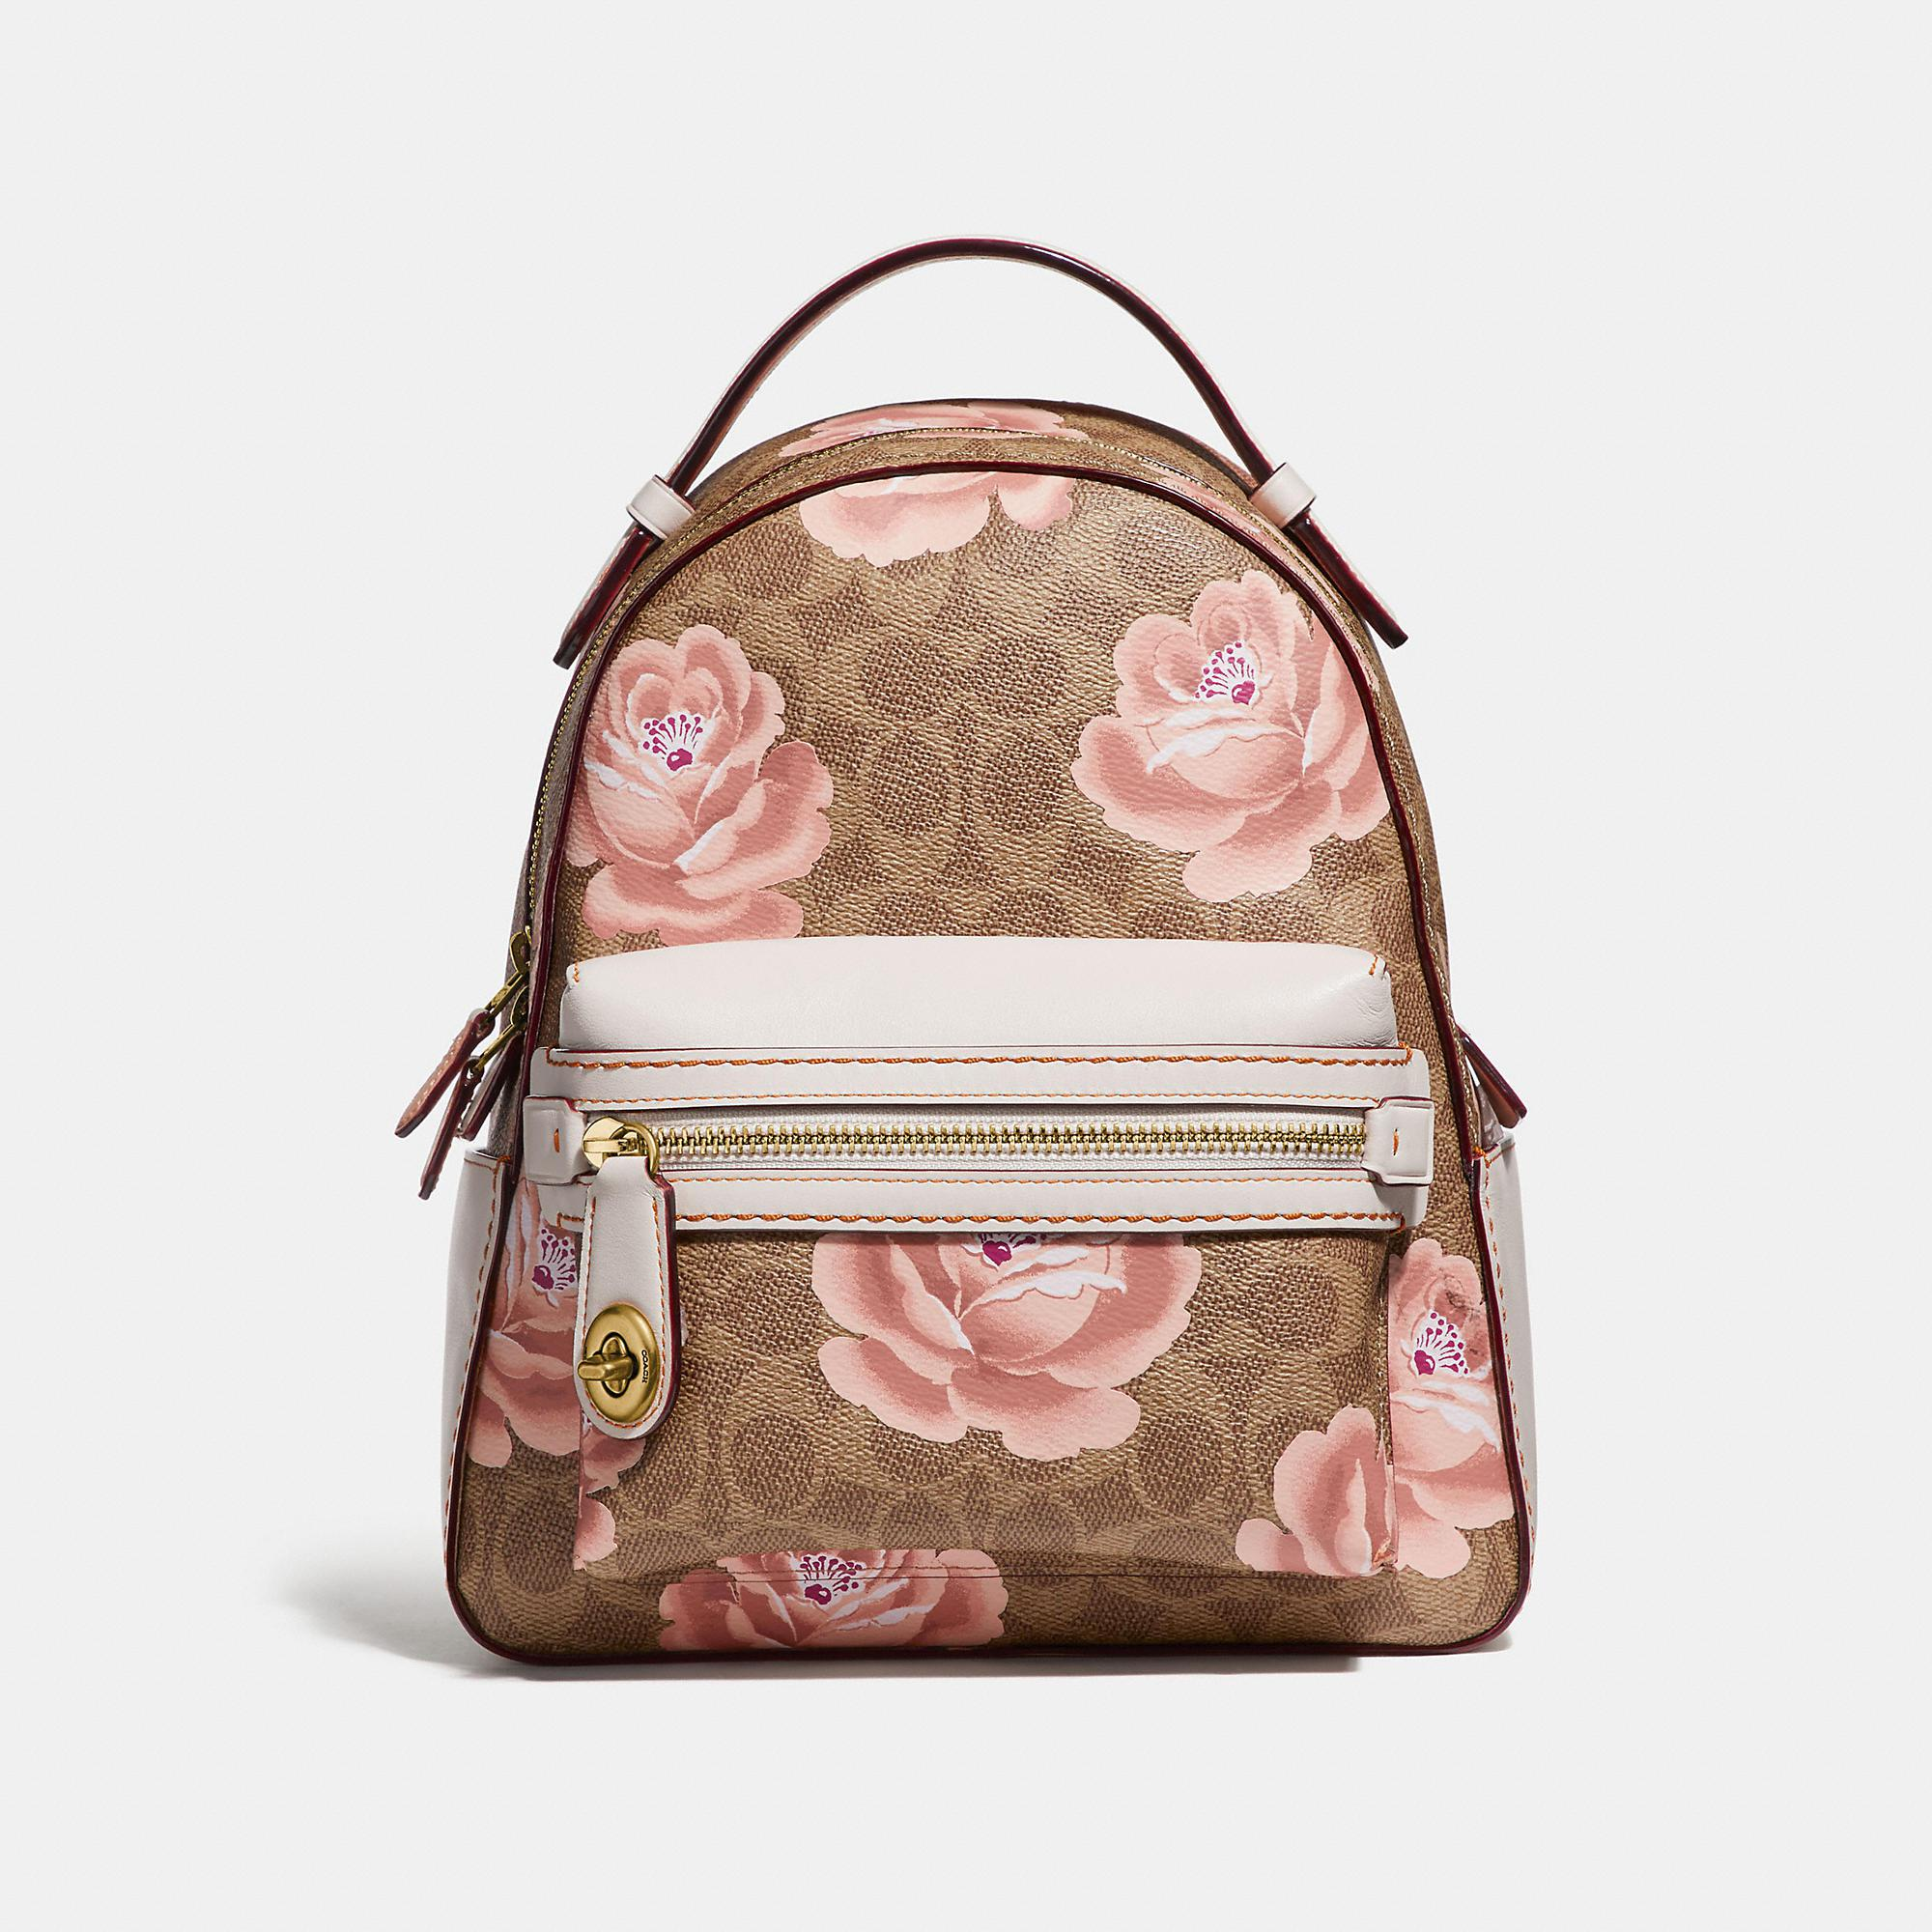 3bba1cce1d068 Lyst - COACH Campus Backpack 23 In Signature Rose Print